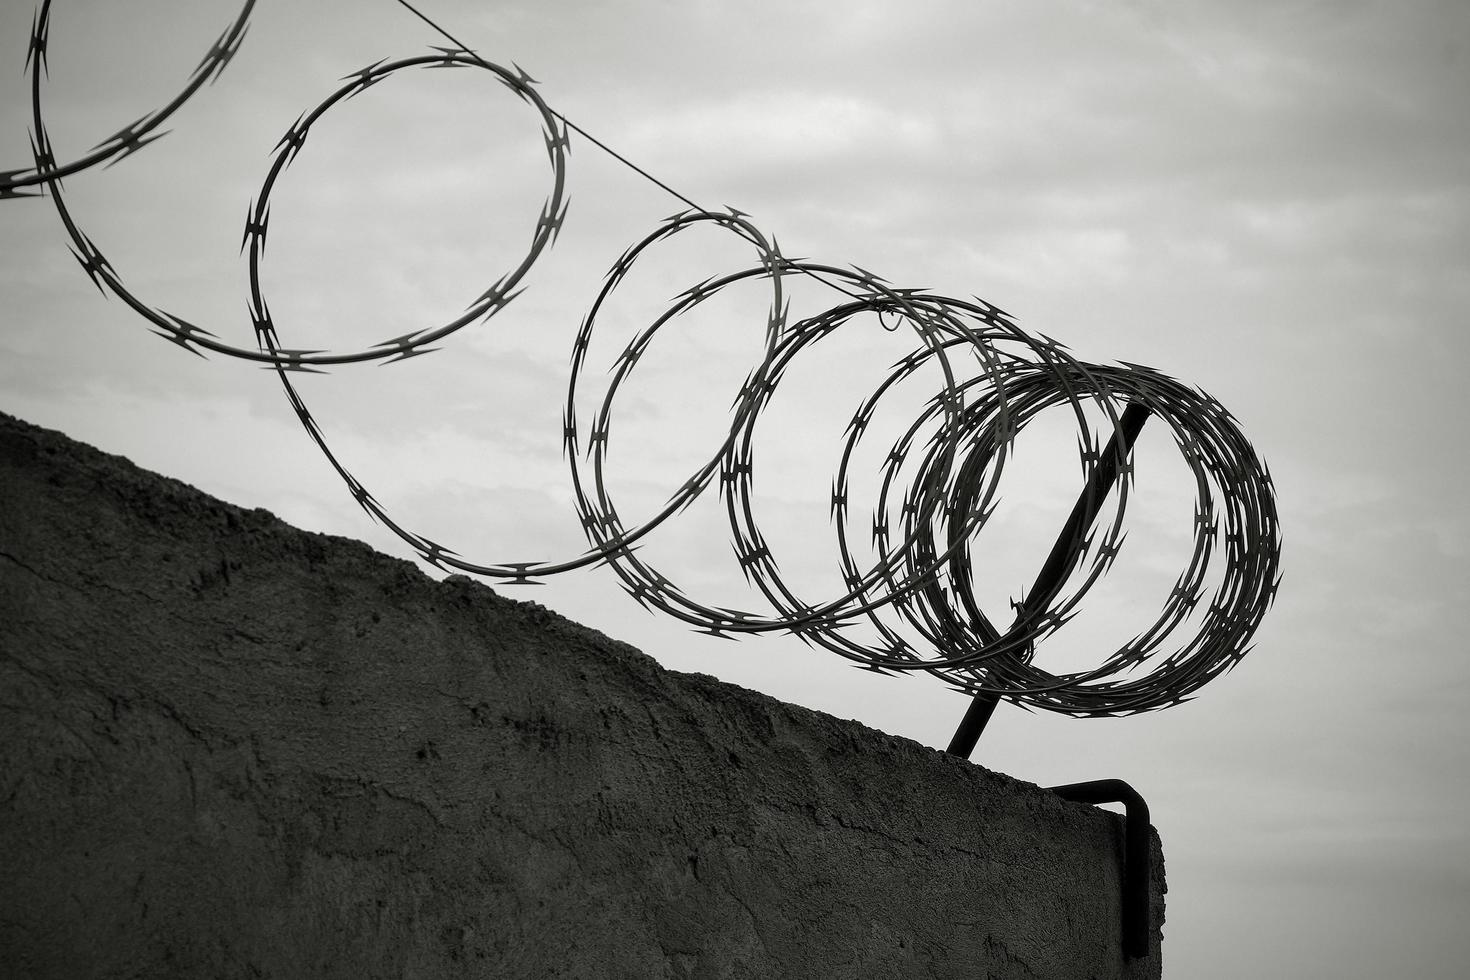 Barbed wire on the wall in black and white photo